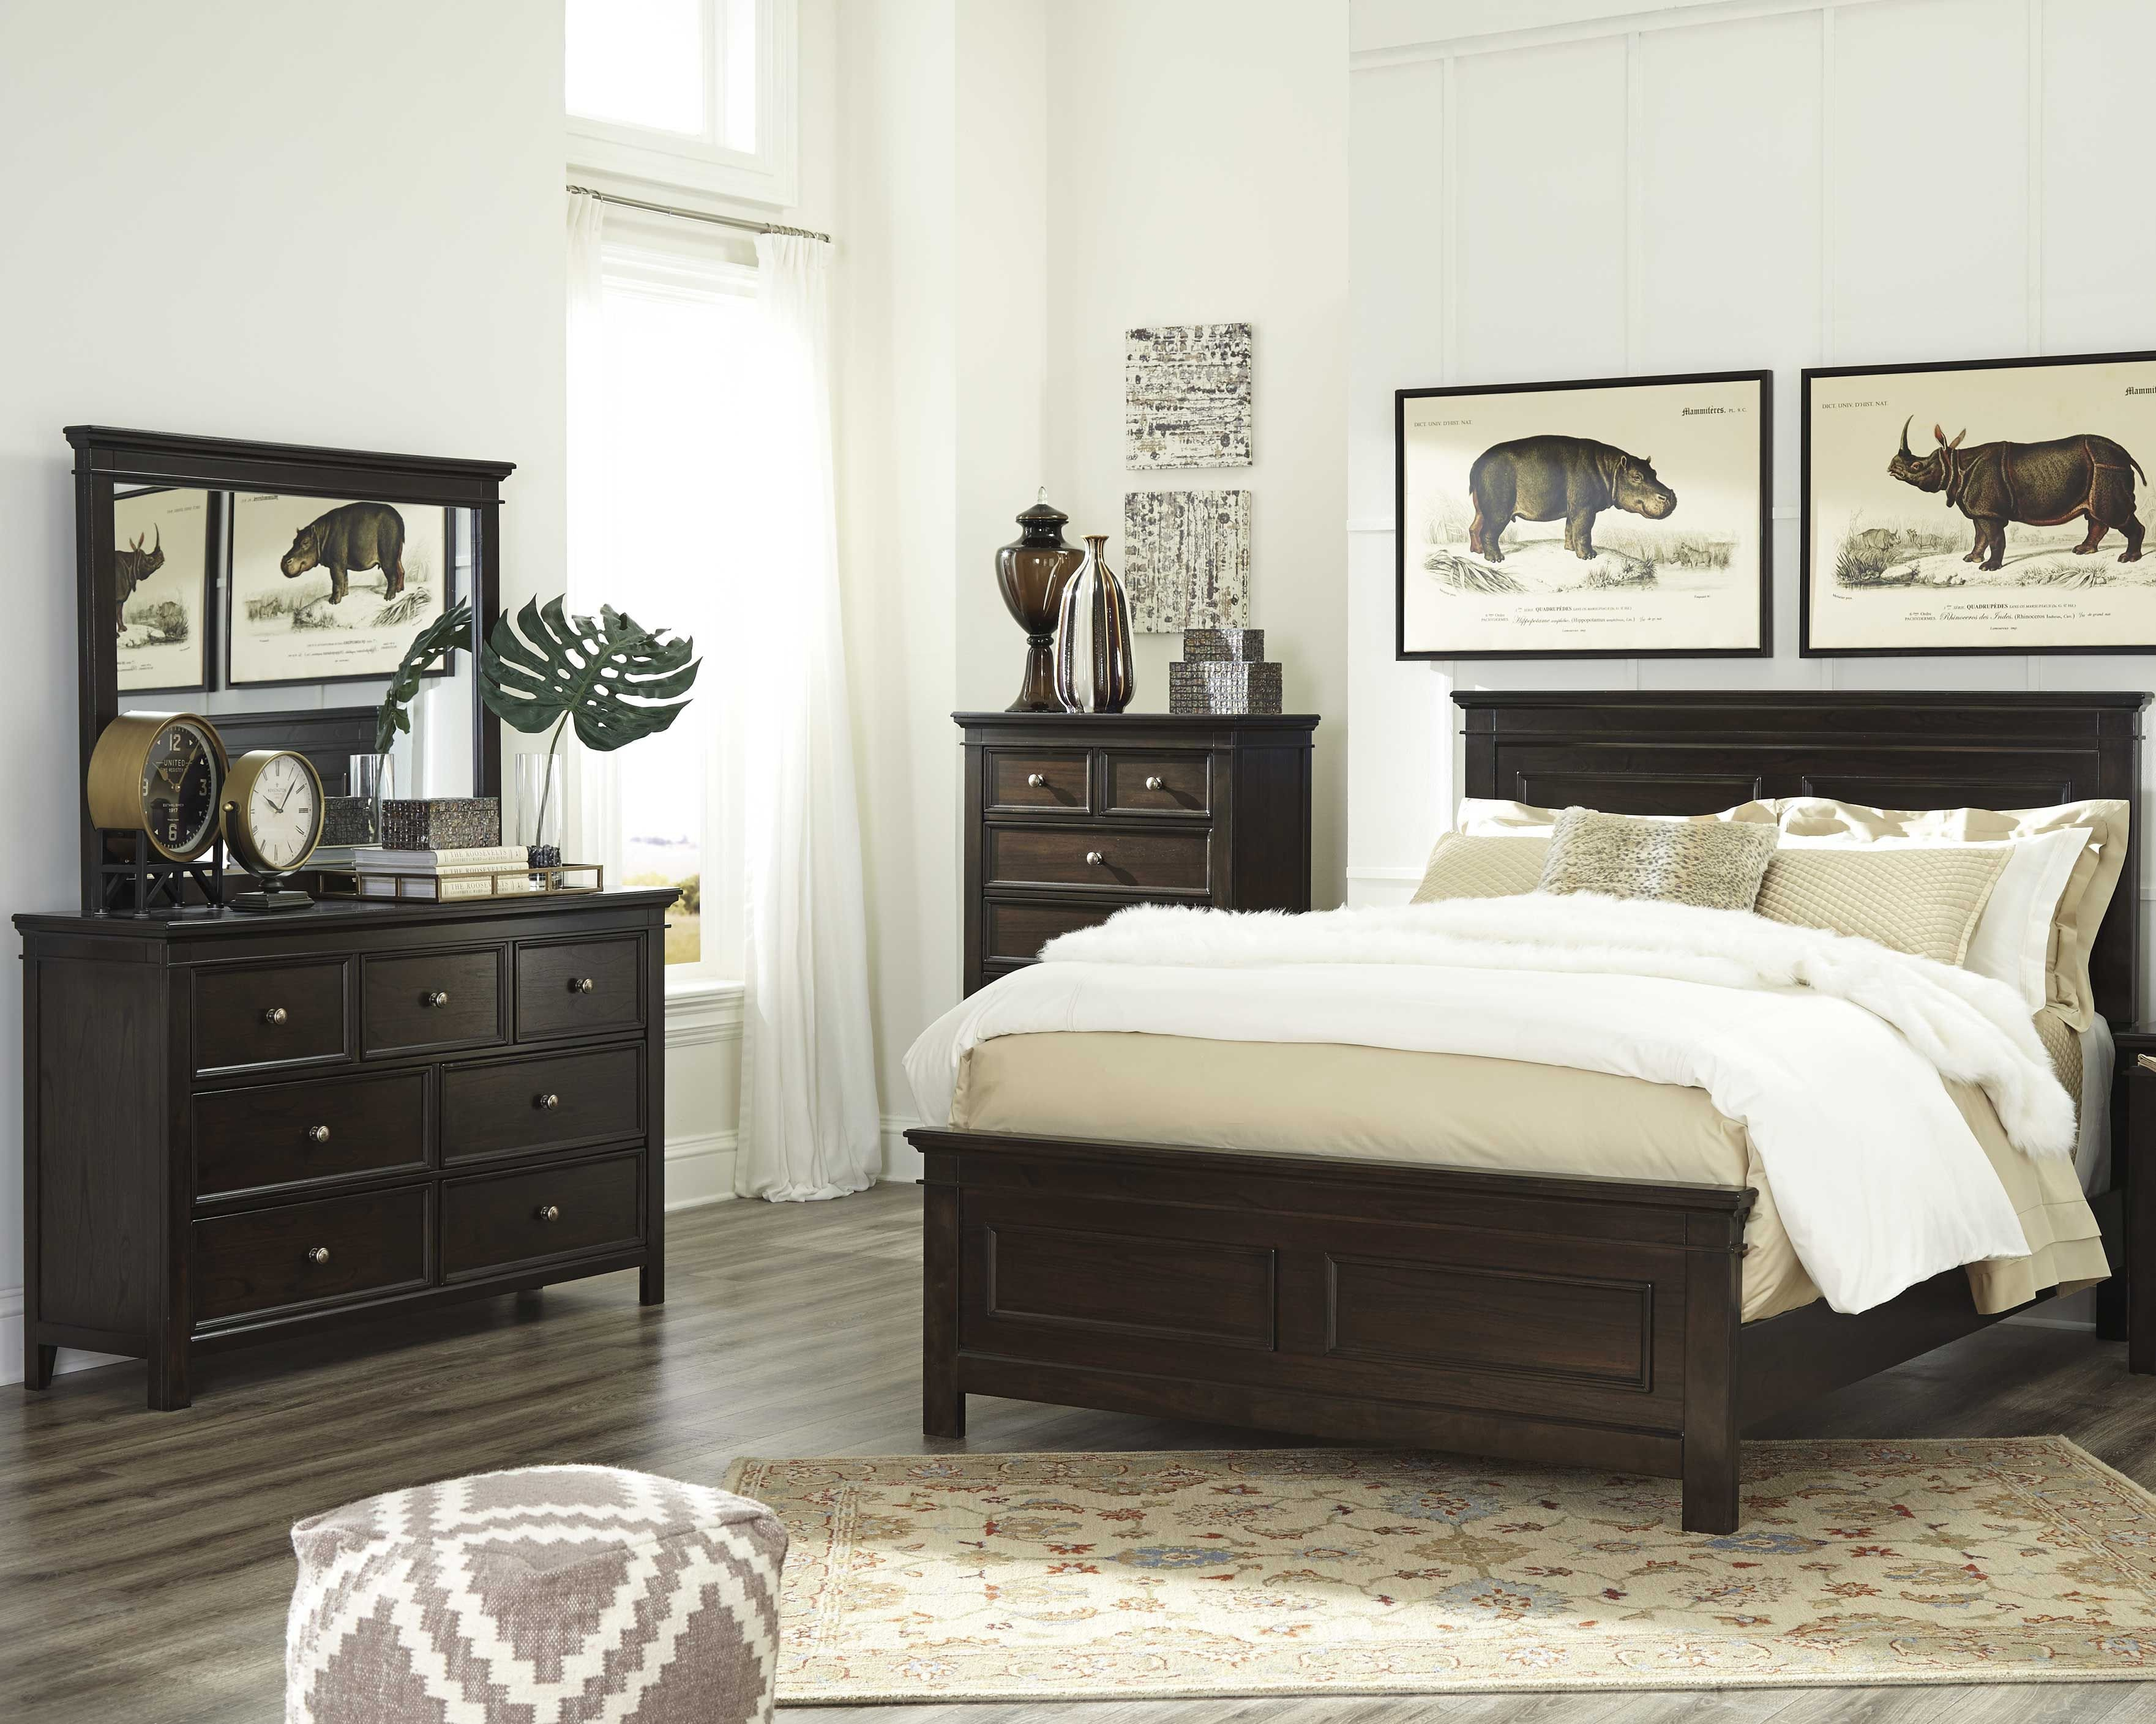 Ashley Home Store Bedroom Set Awesome Alexee 5 Piece King Bedroom Dark Brown